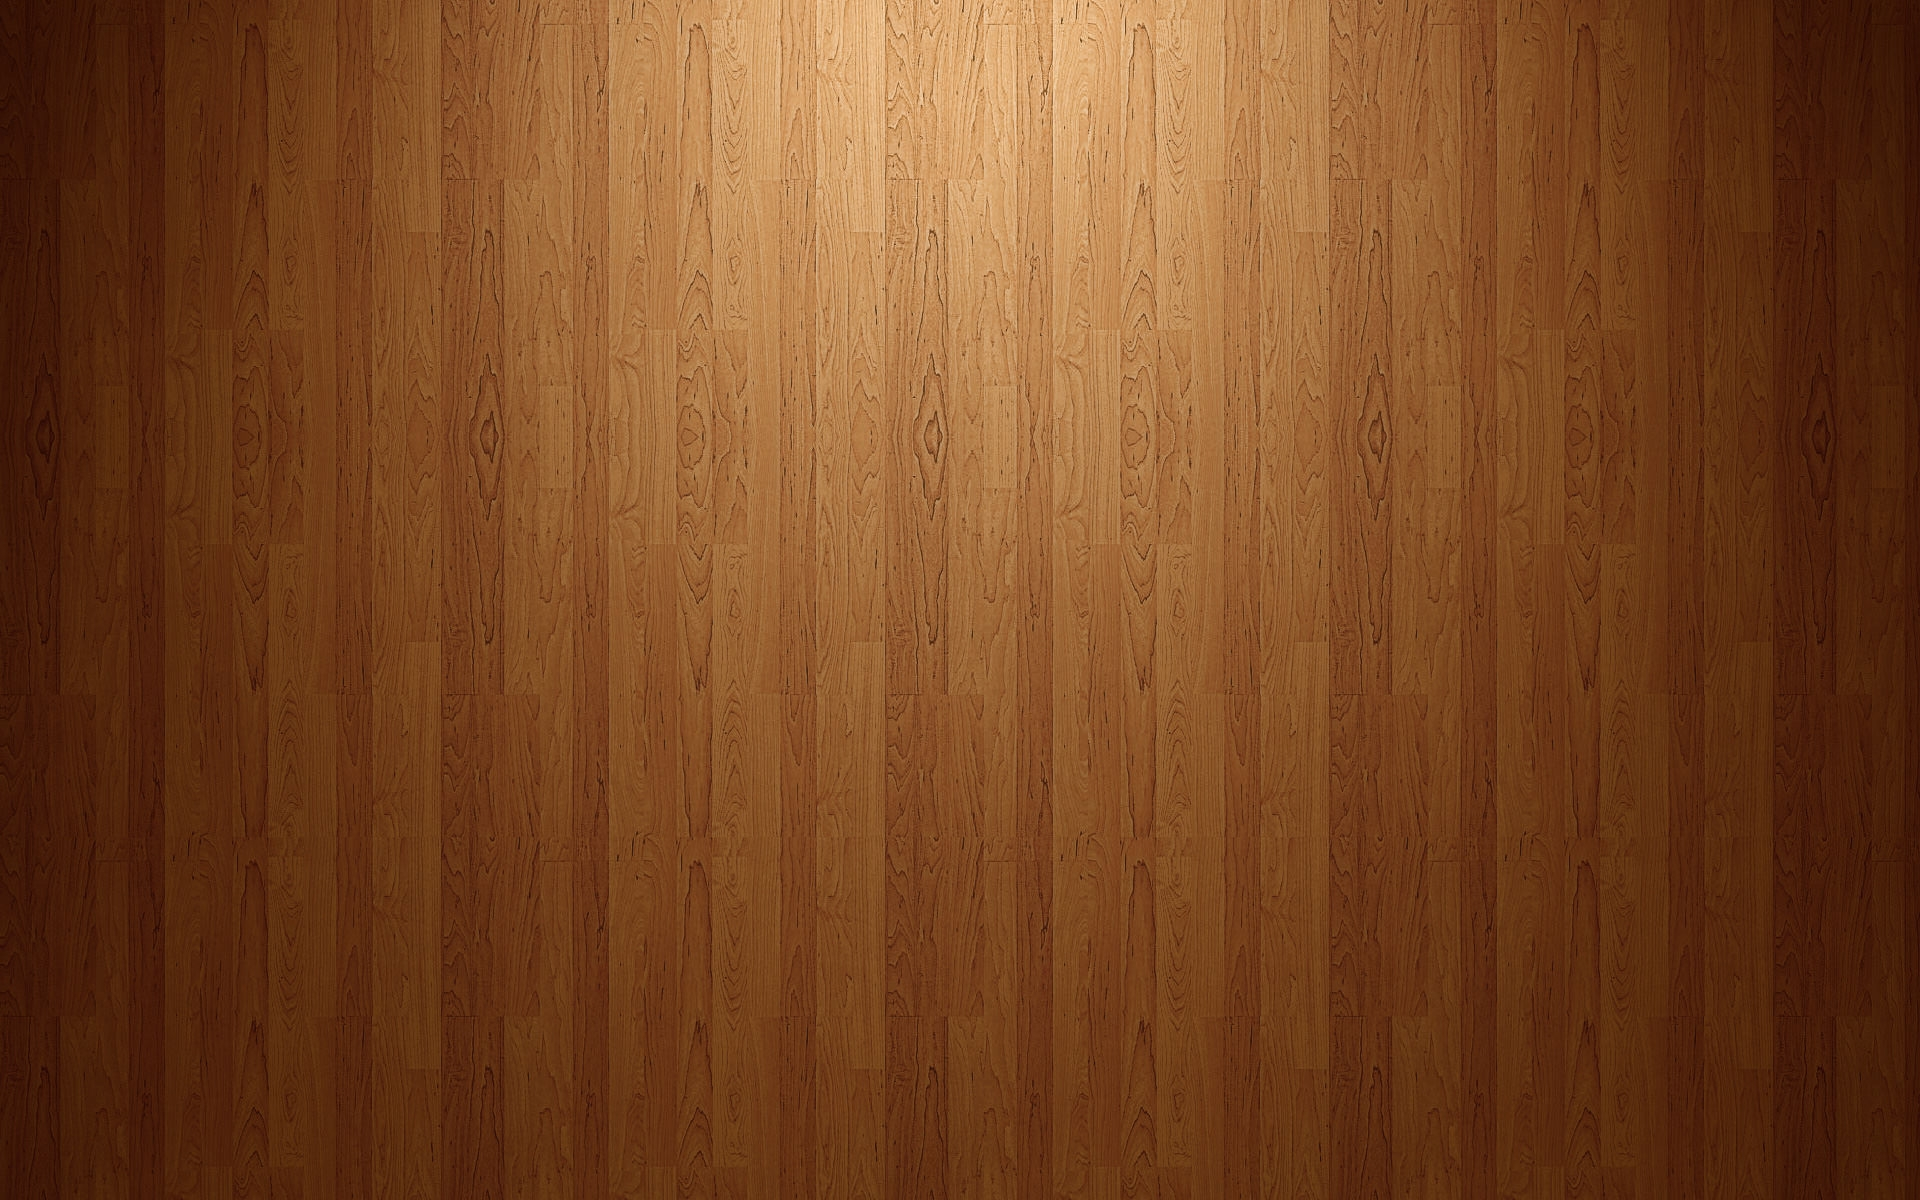 HD Wood Floor Wallpaper